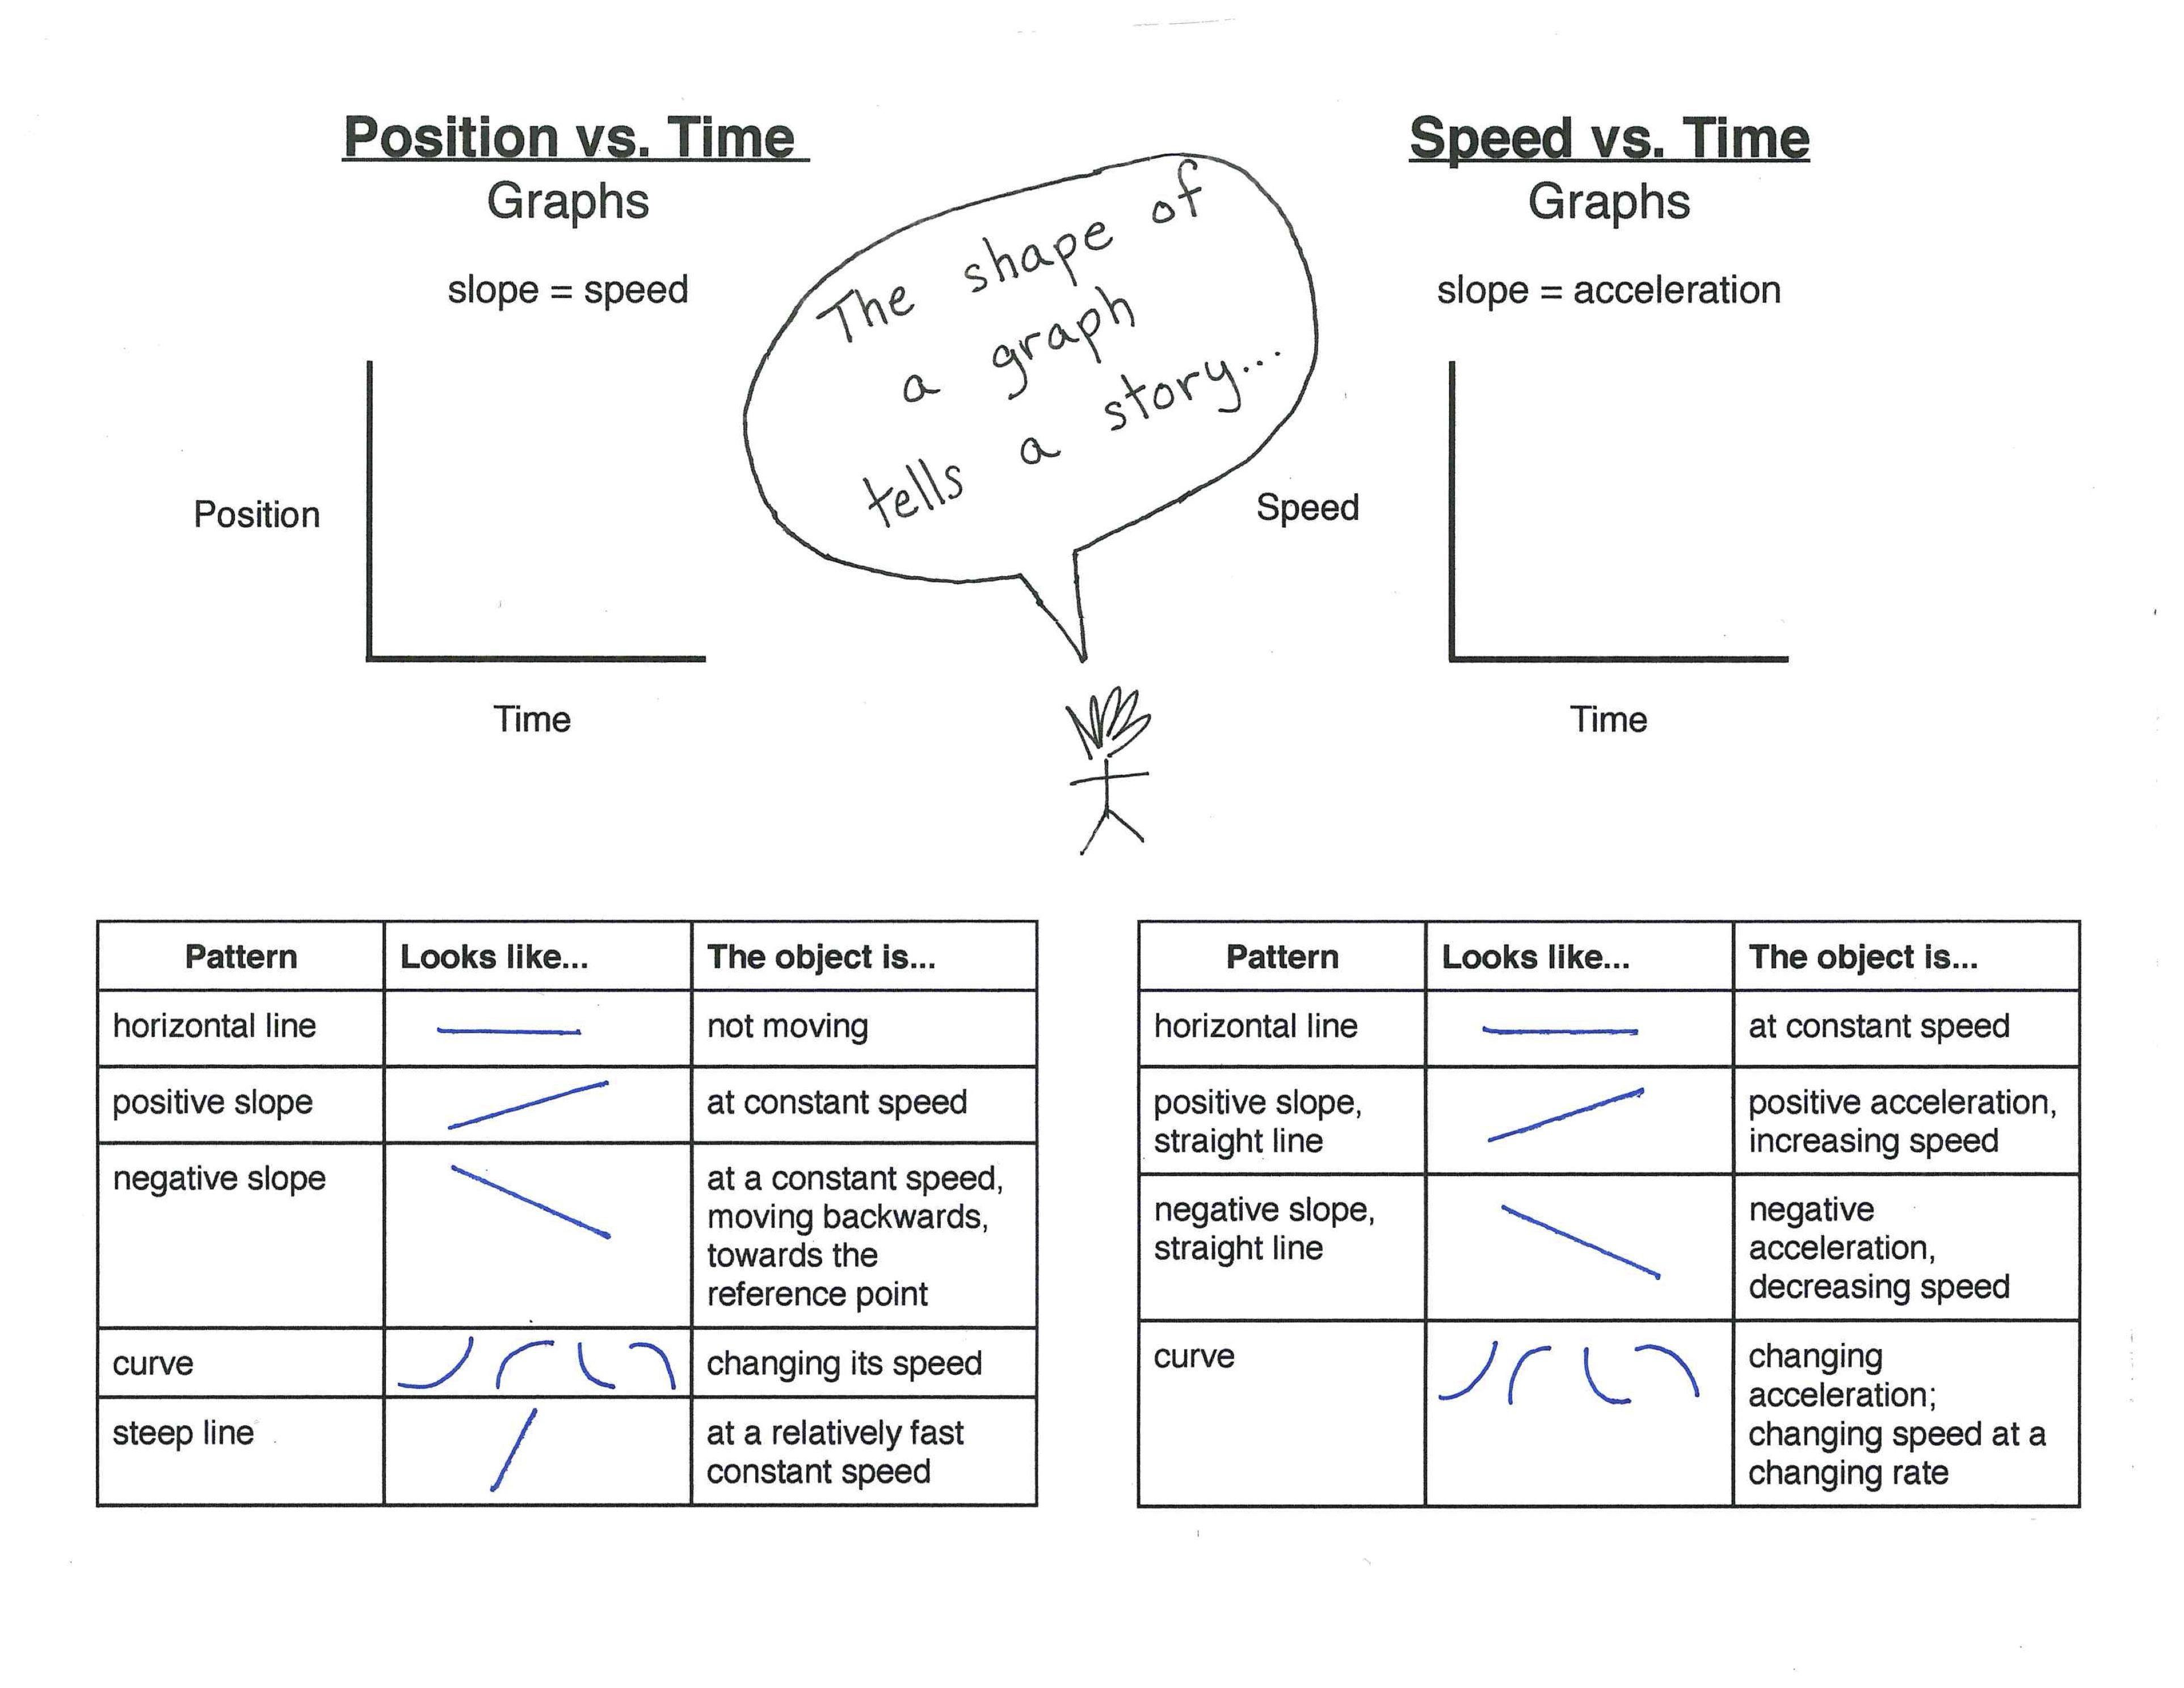 Learn How To Interpret Graphs Regarding Motion And Speed